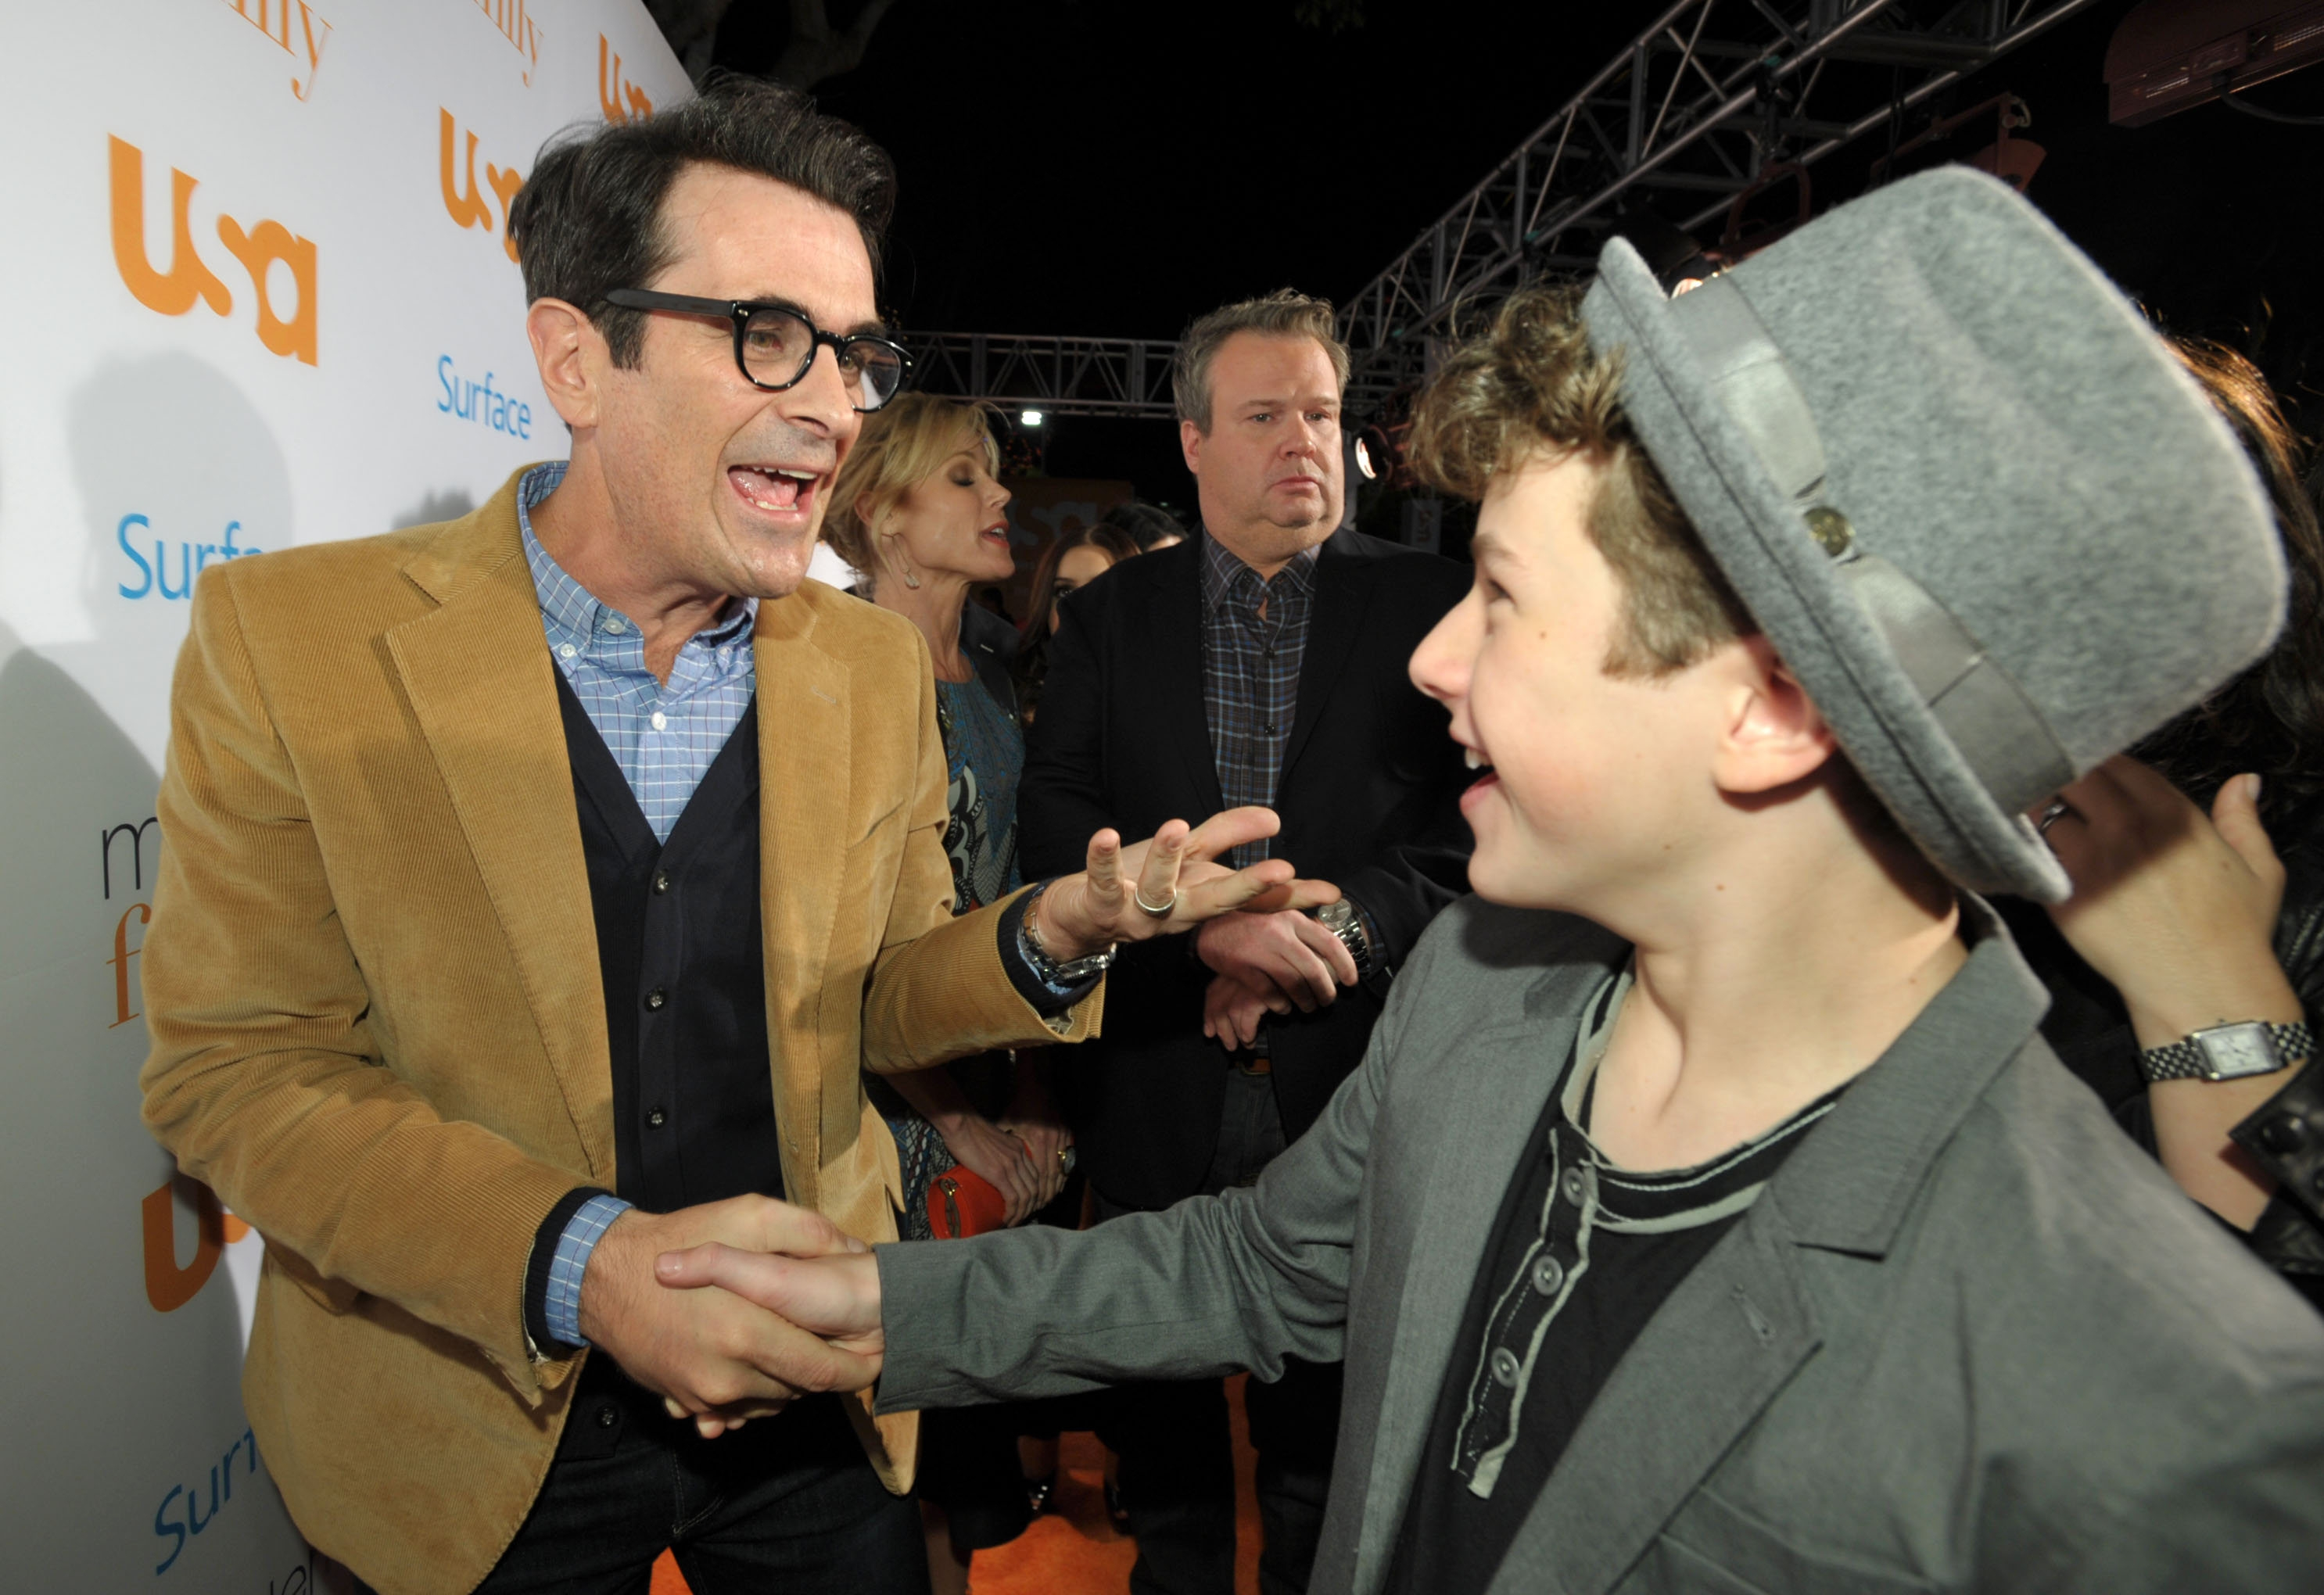 """Ty Burrell, who plays Phil on """"Modern Family,"""" and Nolan Gould, who plays Phil's son, Luke, greet each other at Fan Appreciation Day event Monday. The entire cast attended."""